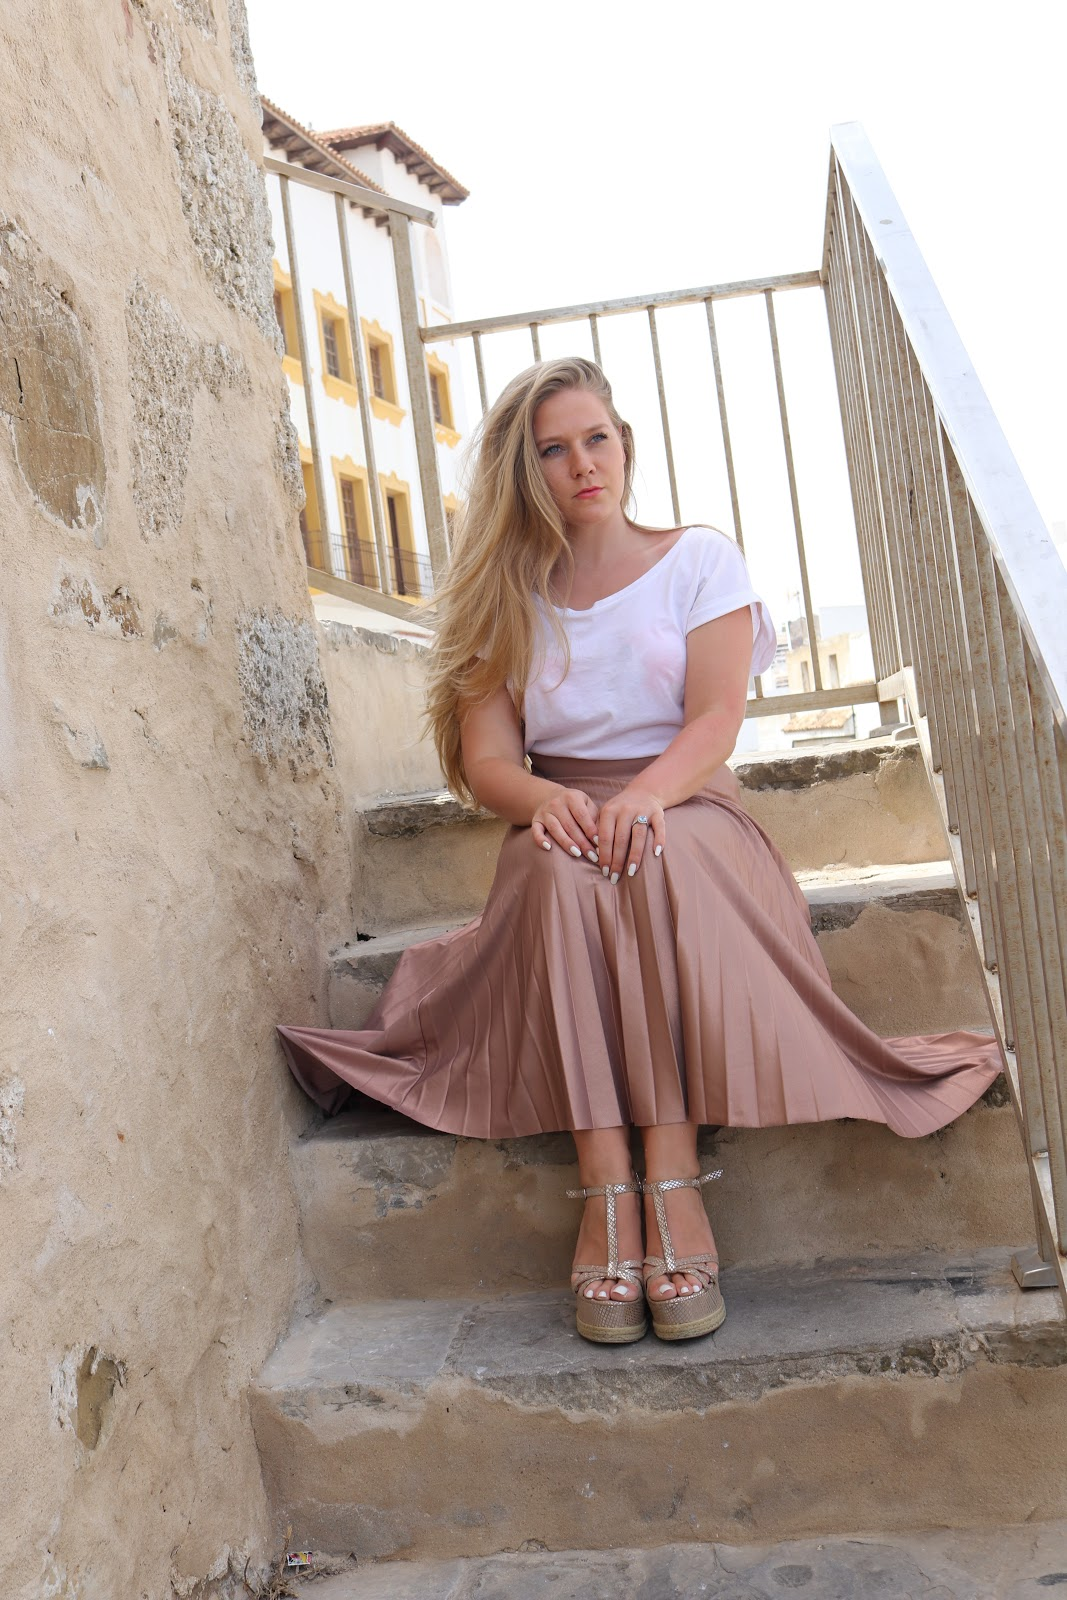 Blonde girl wearing metallic skirt sitting on stairs in Tarifa, Spain